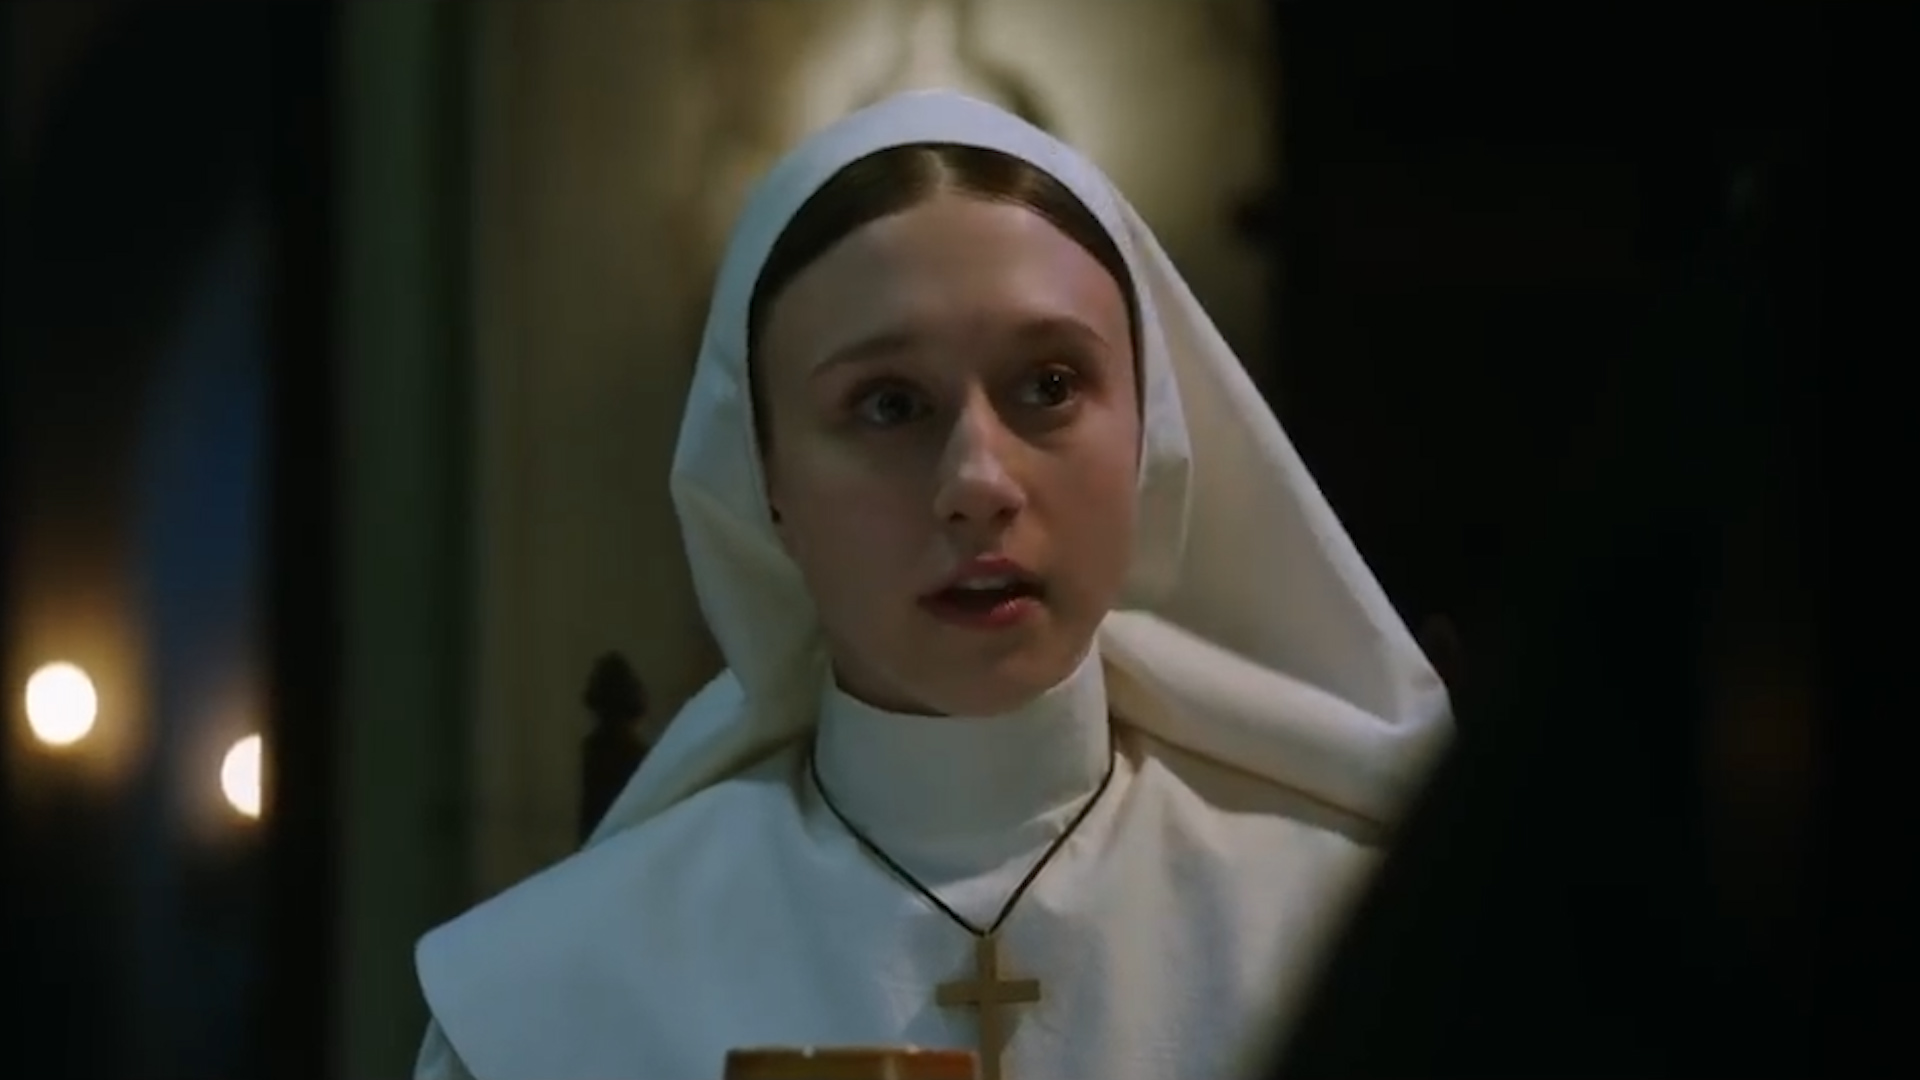 'The Nun' Trailer Has a Jump Scare You Won't Forget